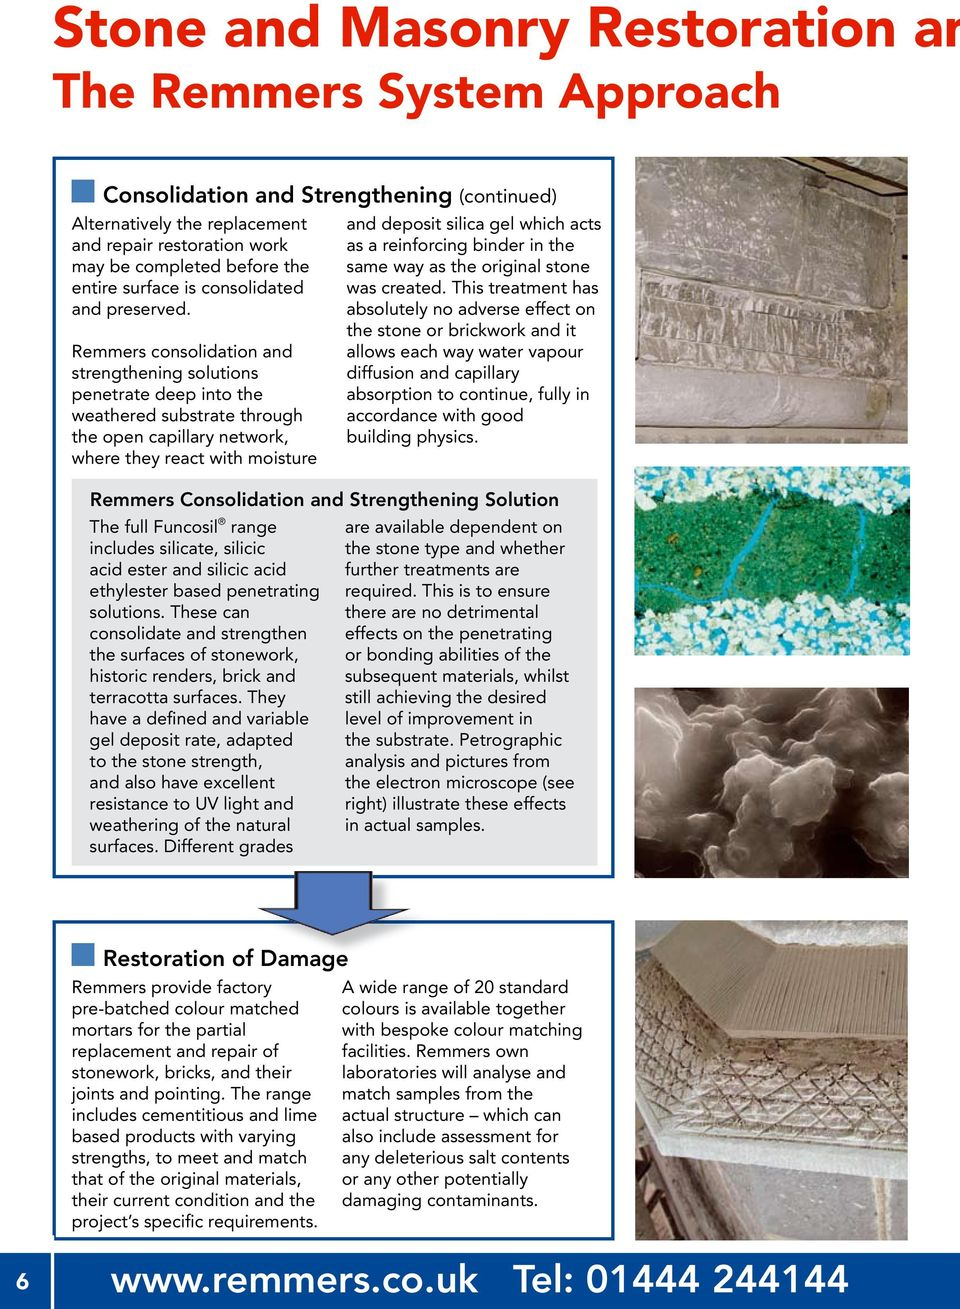 Remmers consolidation and strengthening solutions penetrate deep into the weathered substrate through the open capillary network, where they react with moisture The full Funcosil range includes